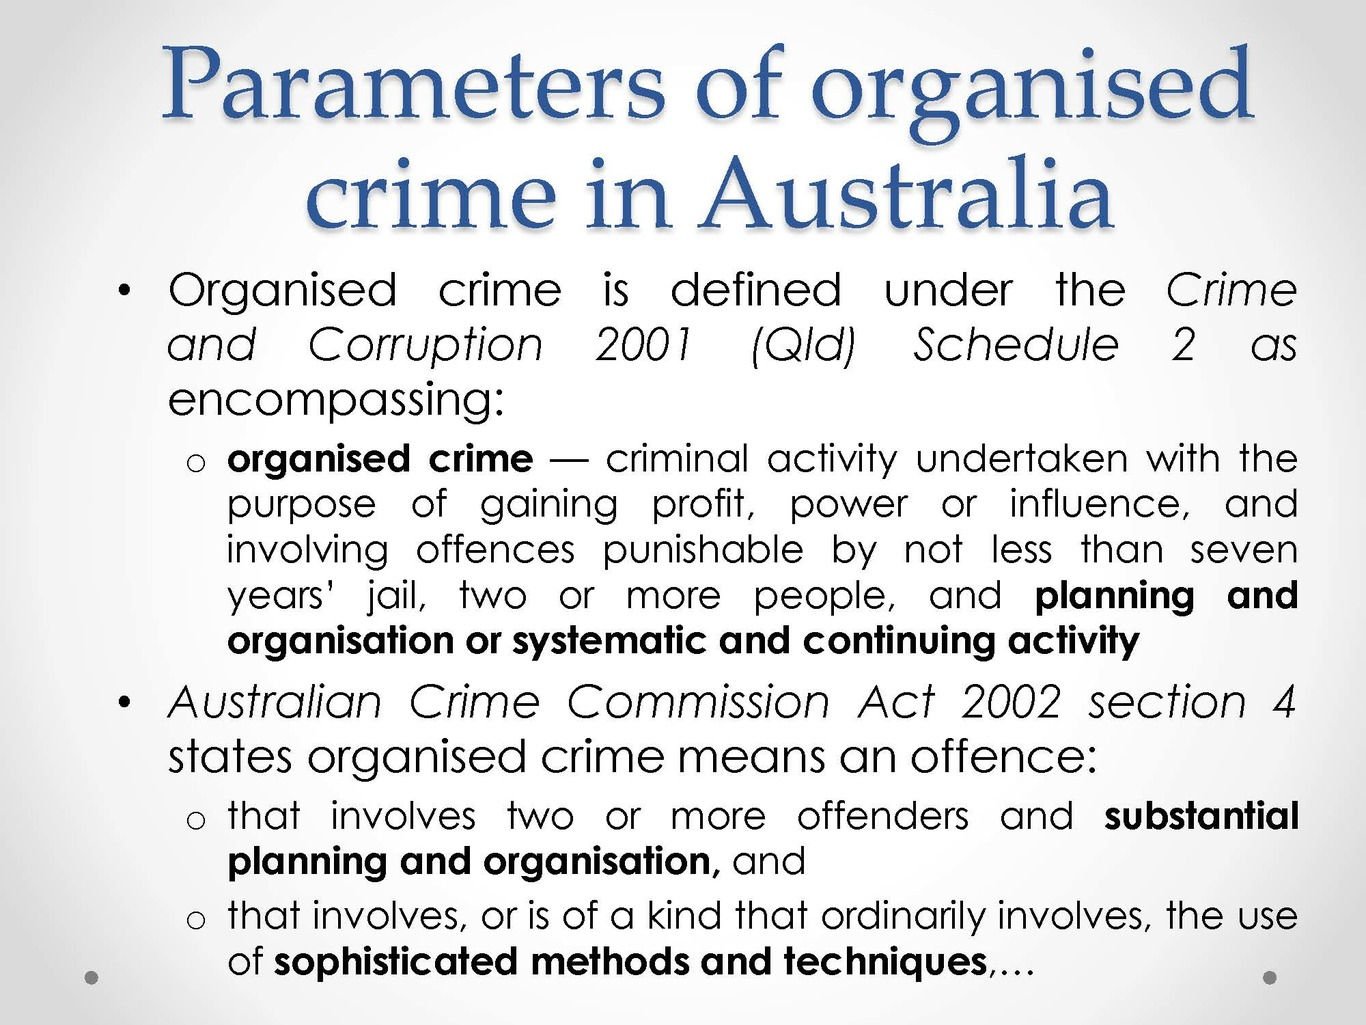 a definition of organized crime Definition of organized crime in the audioenglishorg dictionary meaning of organized crime what does organized crime mean proper usage and pronunciation (in phonetic transcription) of the word organized crime.